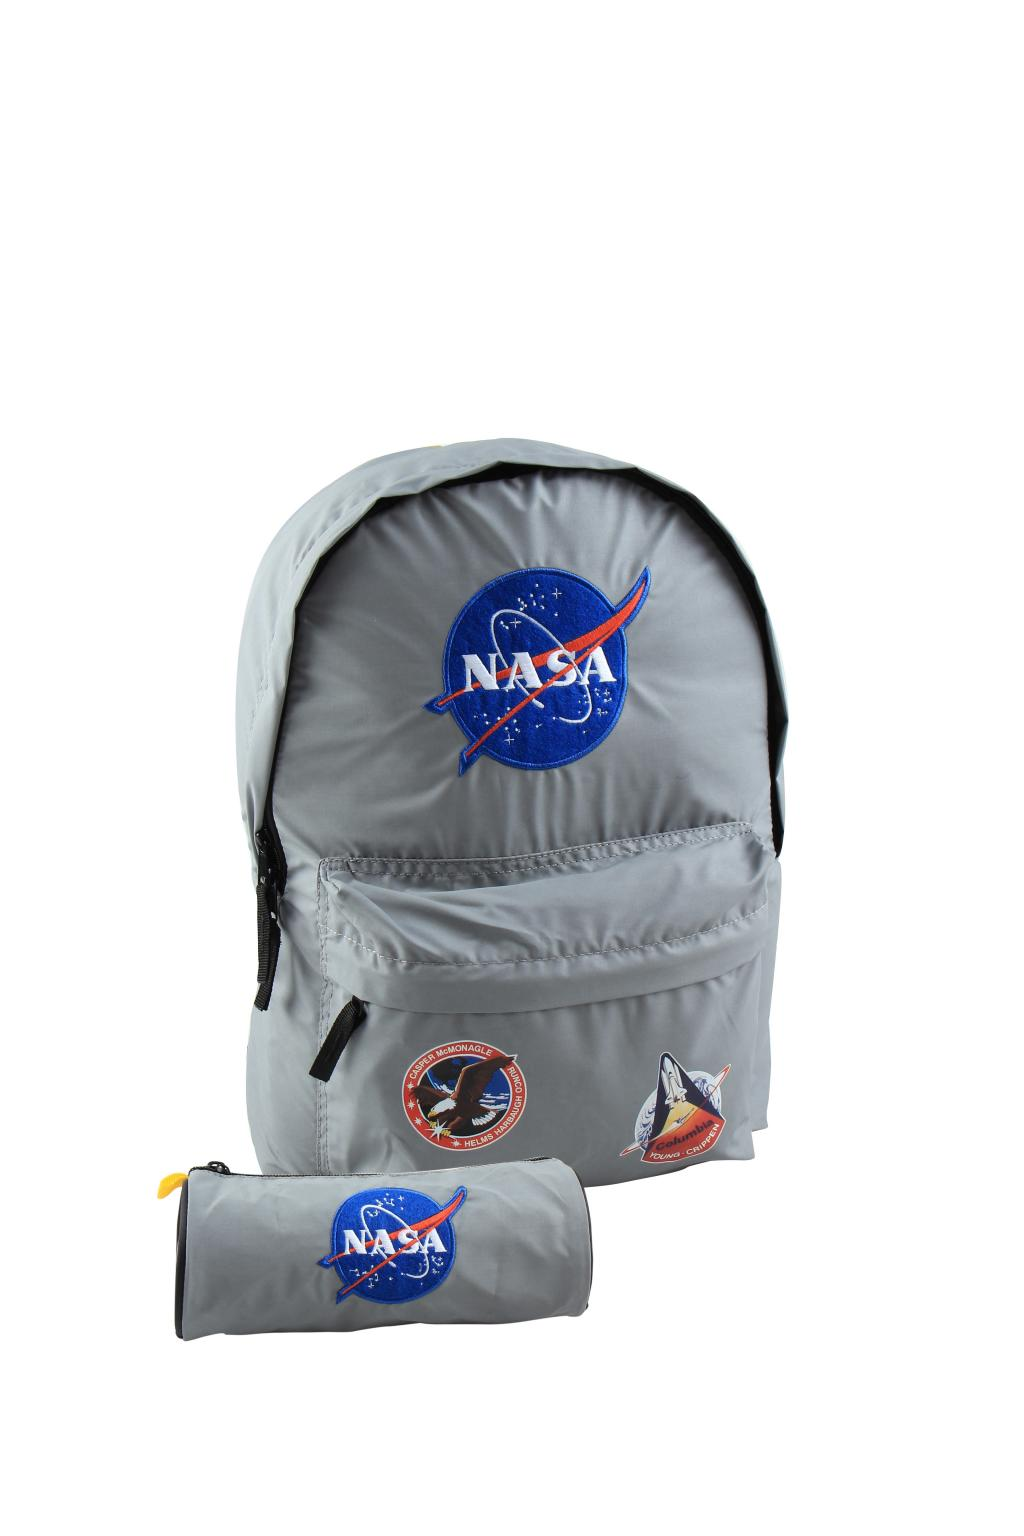 NASA - Sac à dos & trousse_1